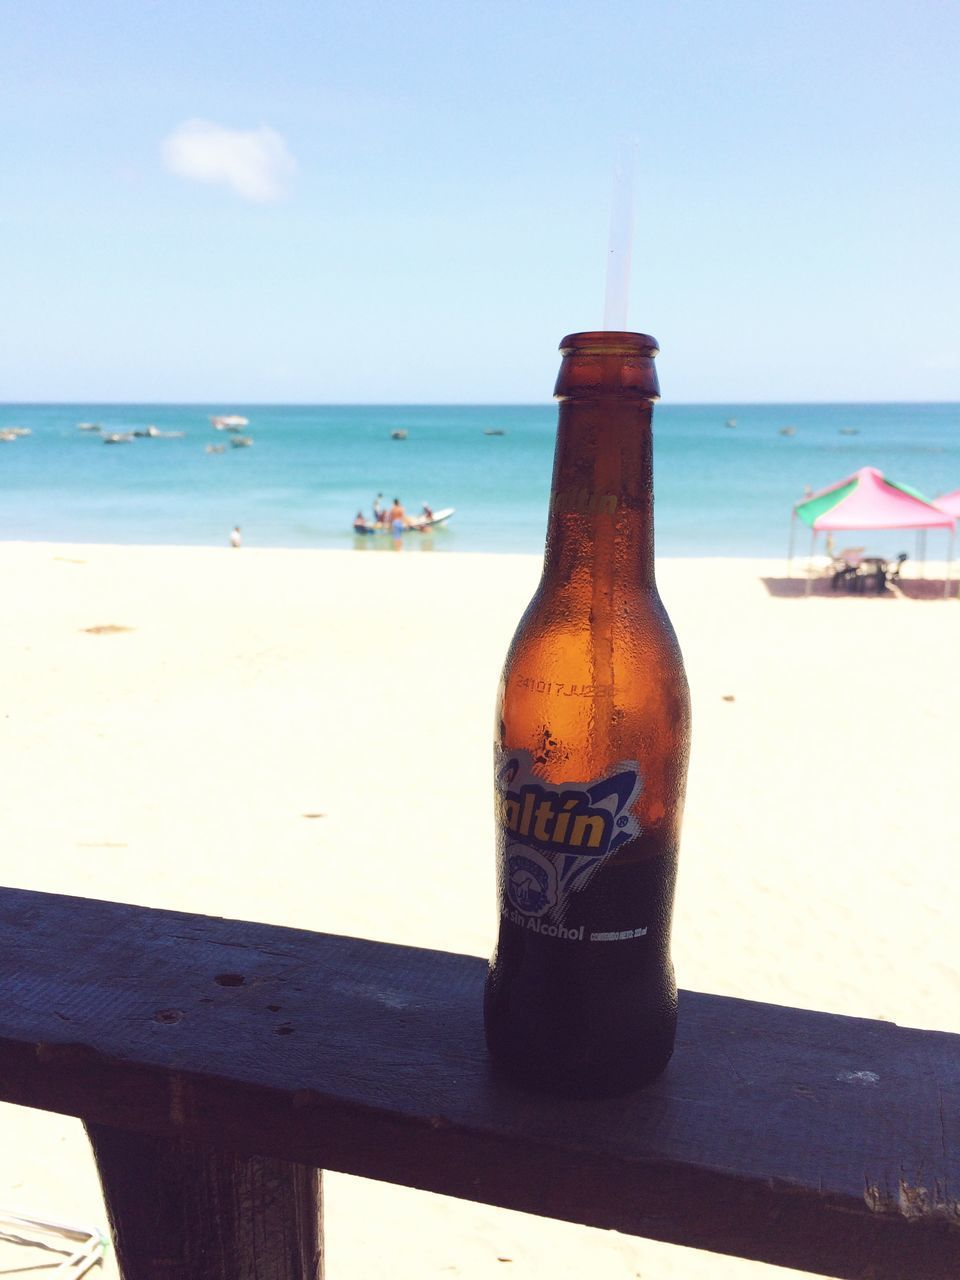 sea, beach, horizon over water, sand, water, bottle, table, sky, day, outdoors, nature, drink, summer, no people, vacations, sunlight, scenics, beauty in nature, close-up, alcohol